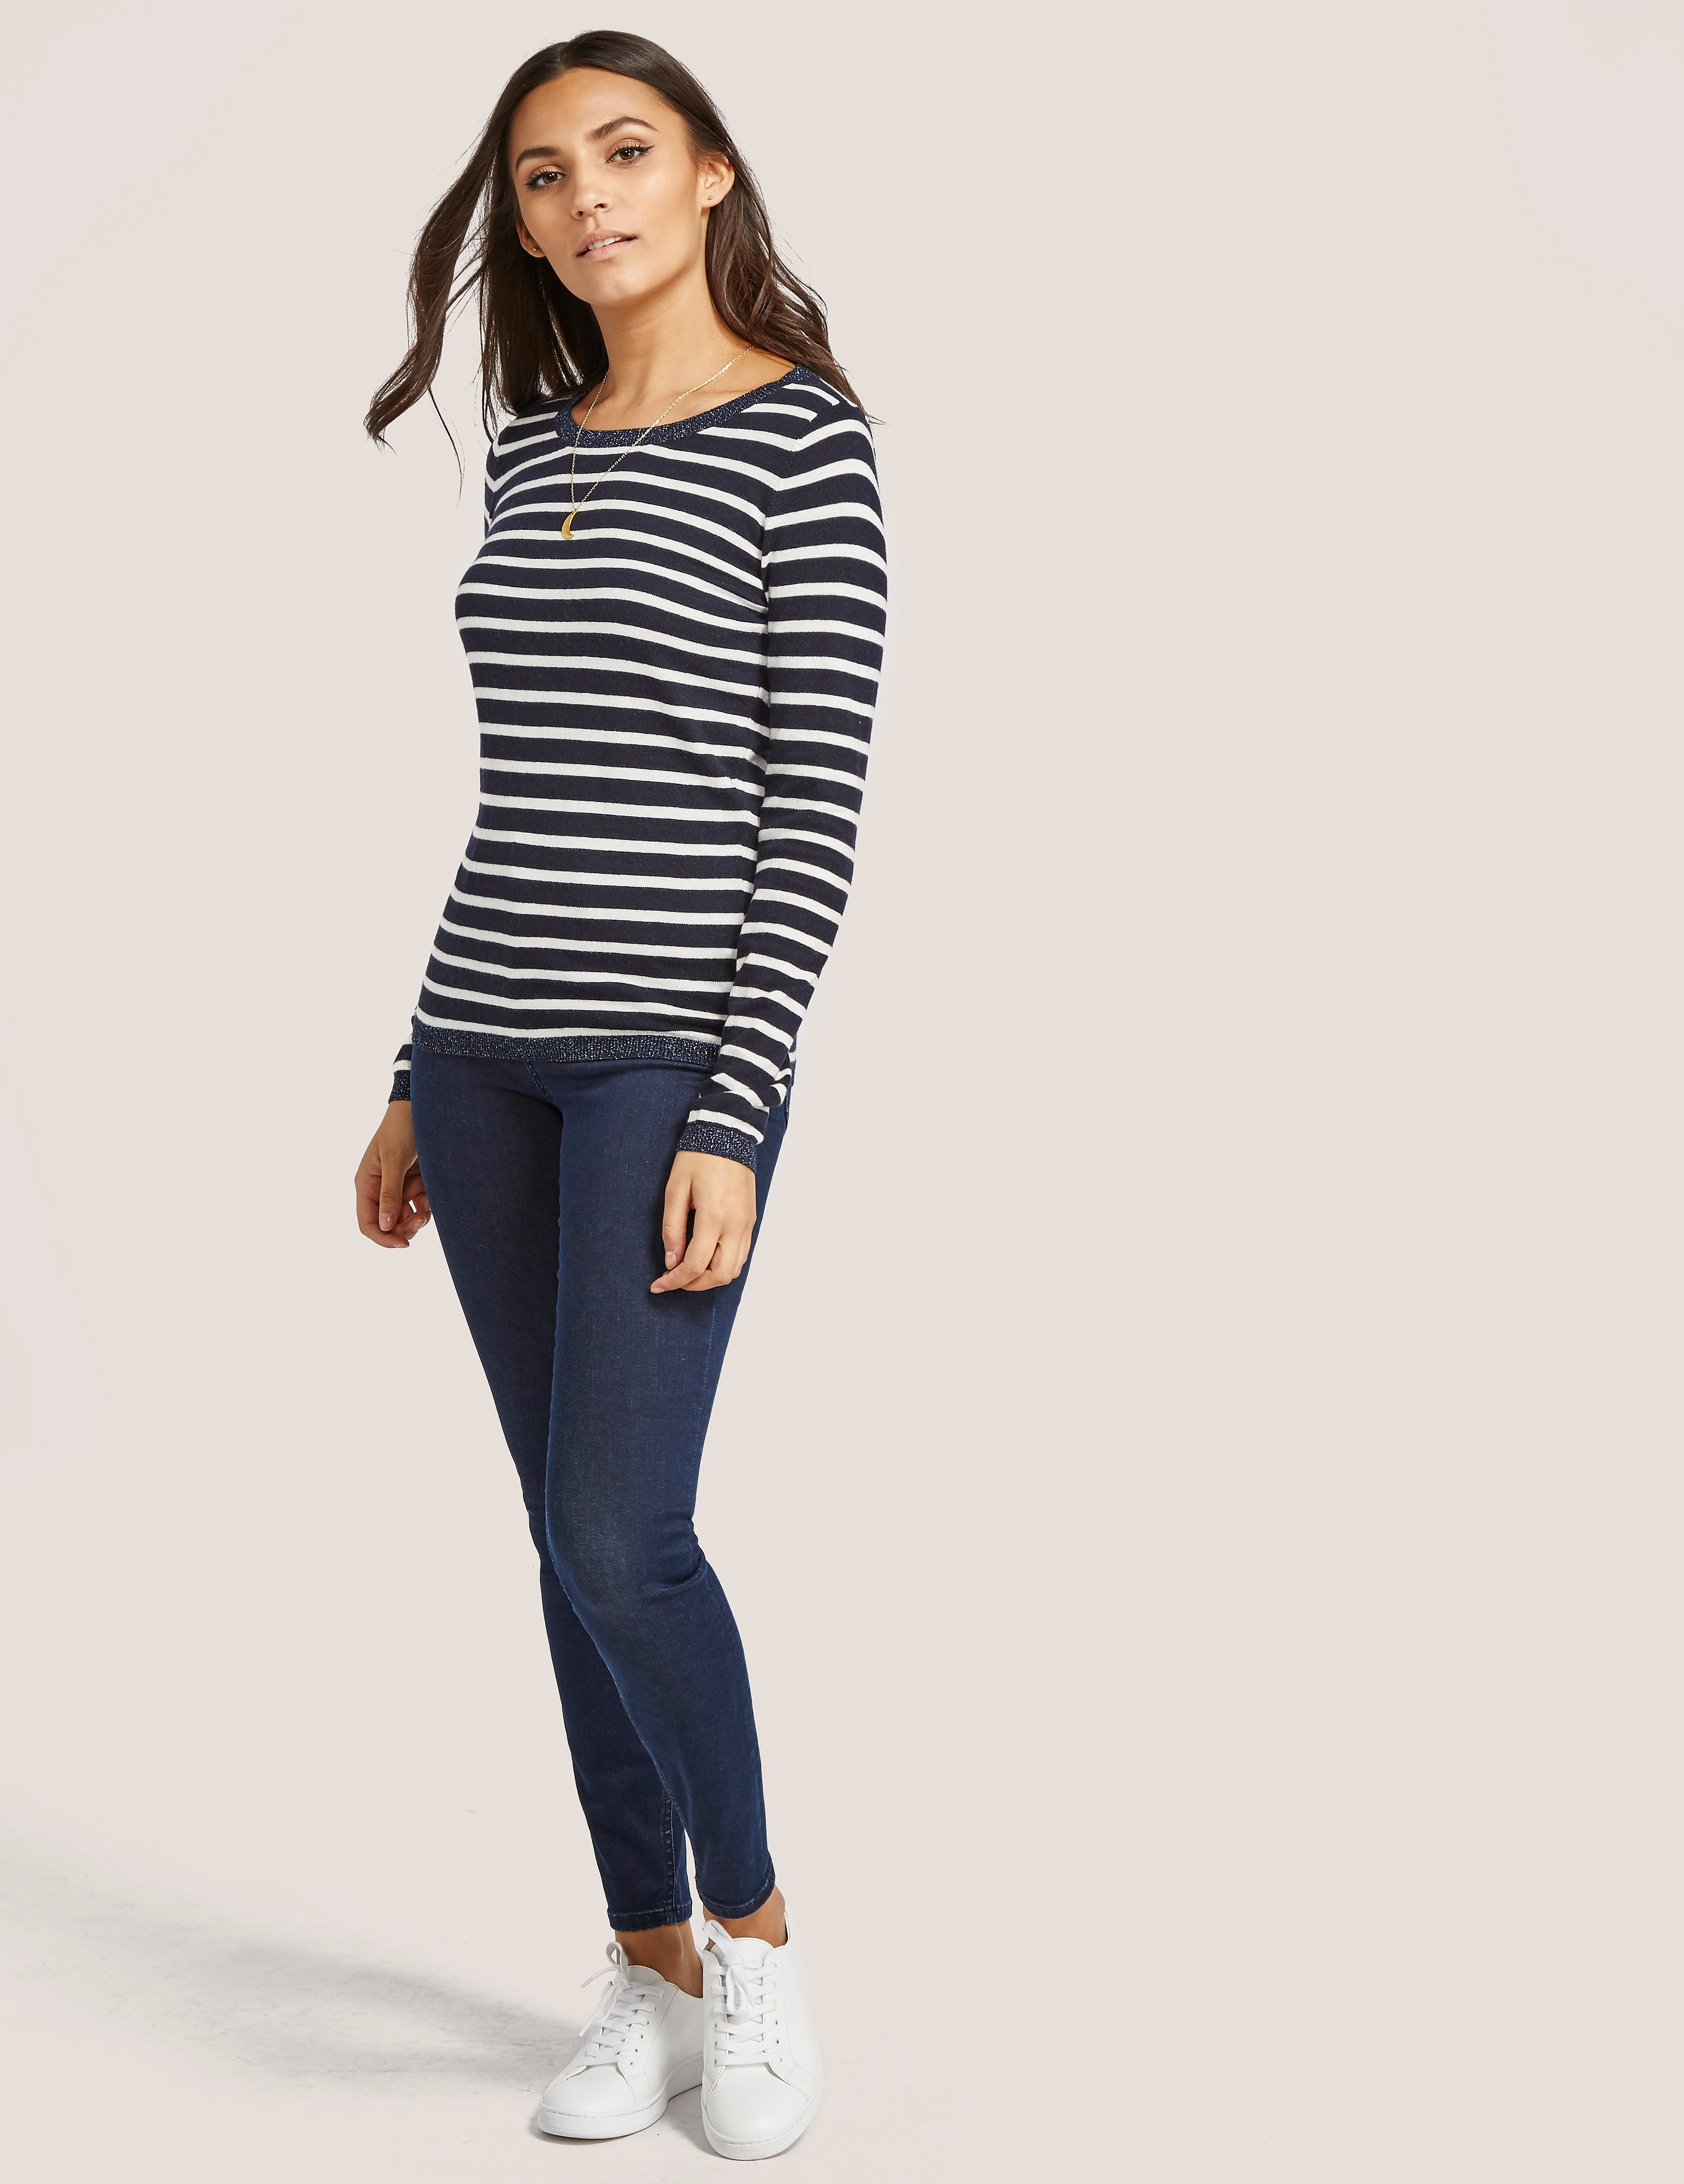 Maison Scotch Stripe Sweatshirt